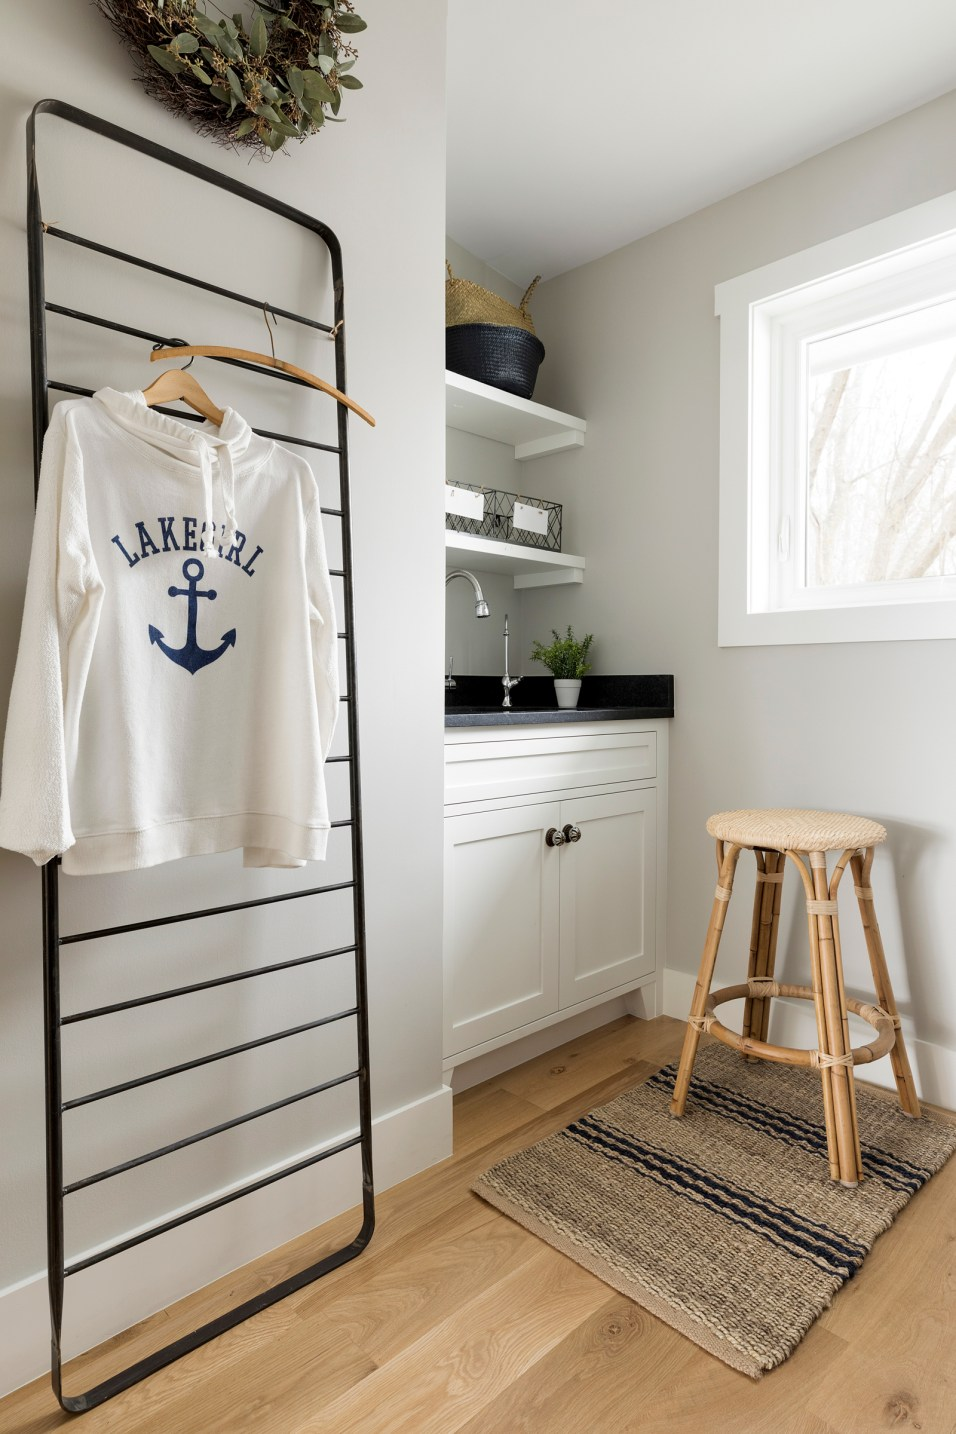 Pantry and Laundry Room